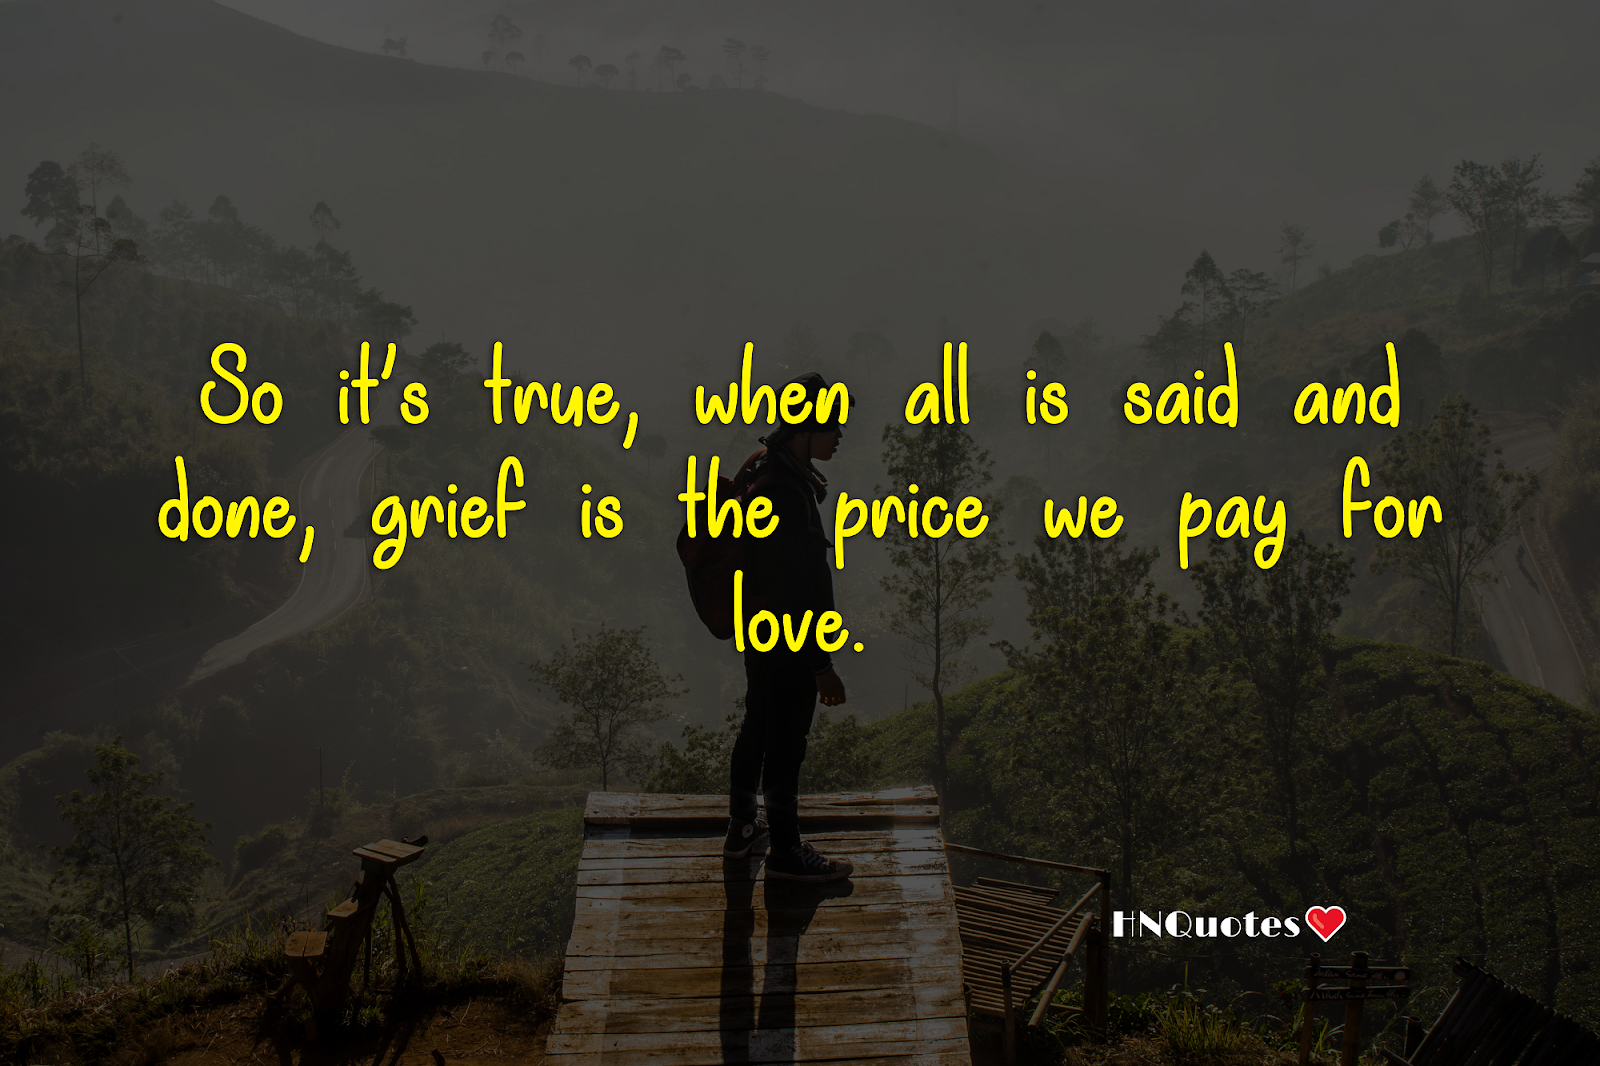 Grief is the Price We Pay for Love | Sad Images | Sad Quotes | HNQuotes